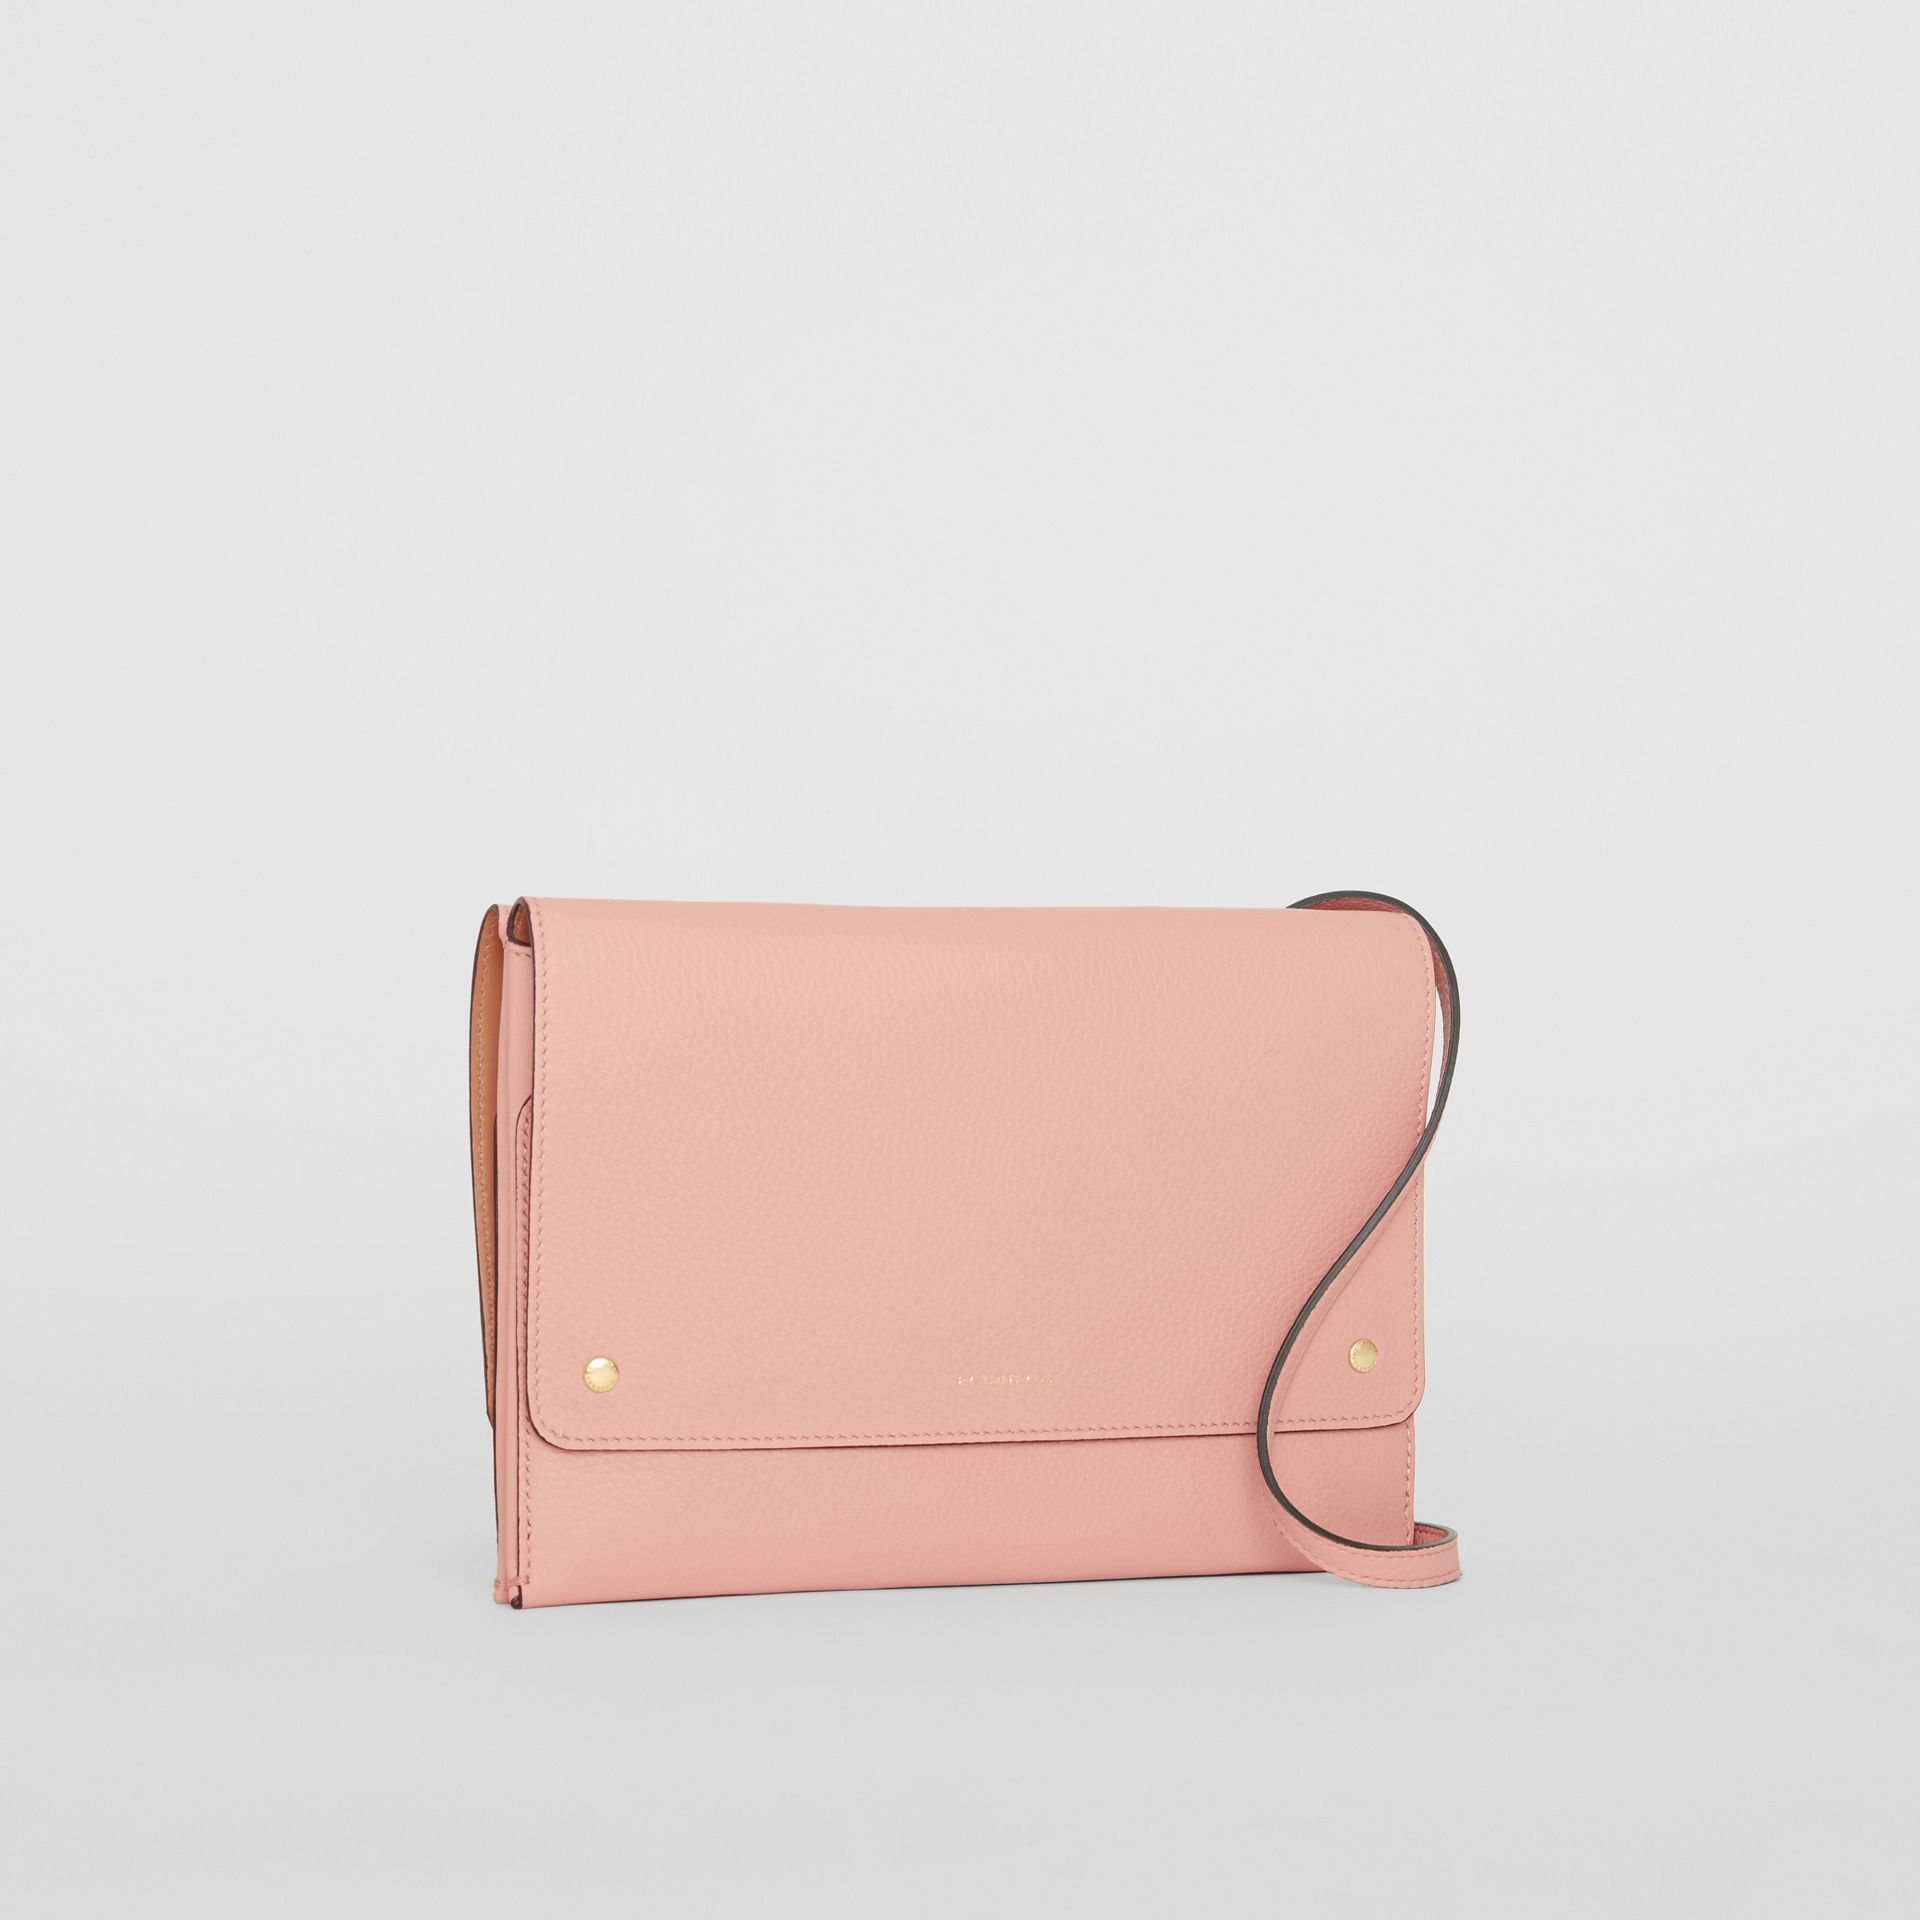 Leather Envelope Crossbody Bag in Ash Rose - Women | Burberry - gallery image 6